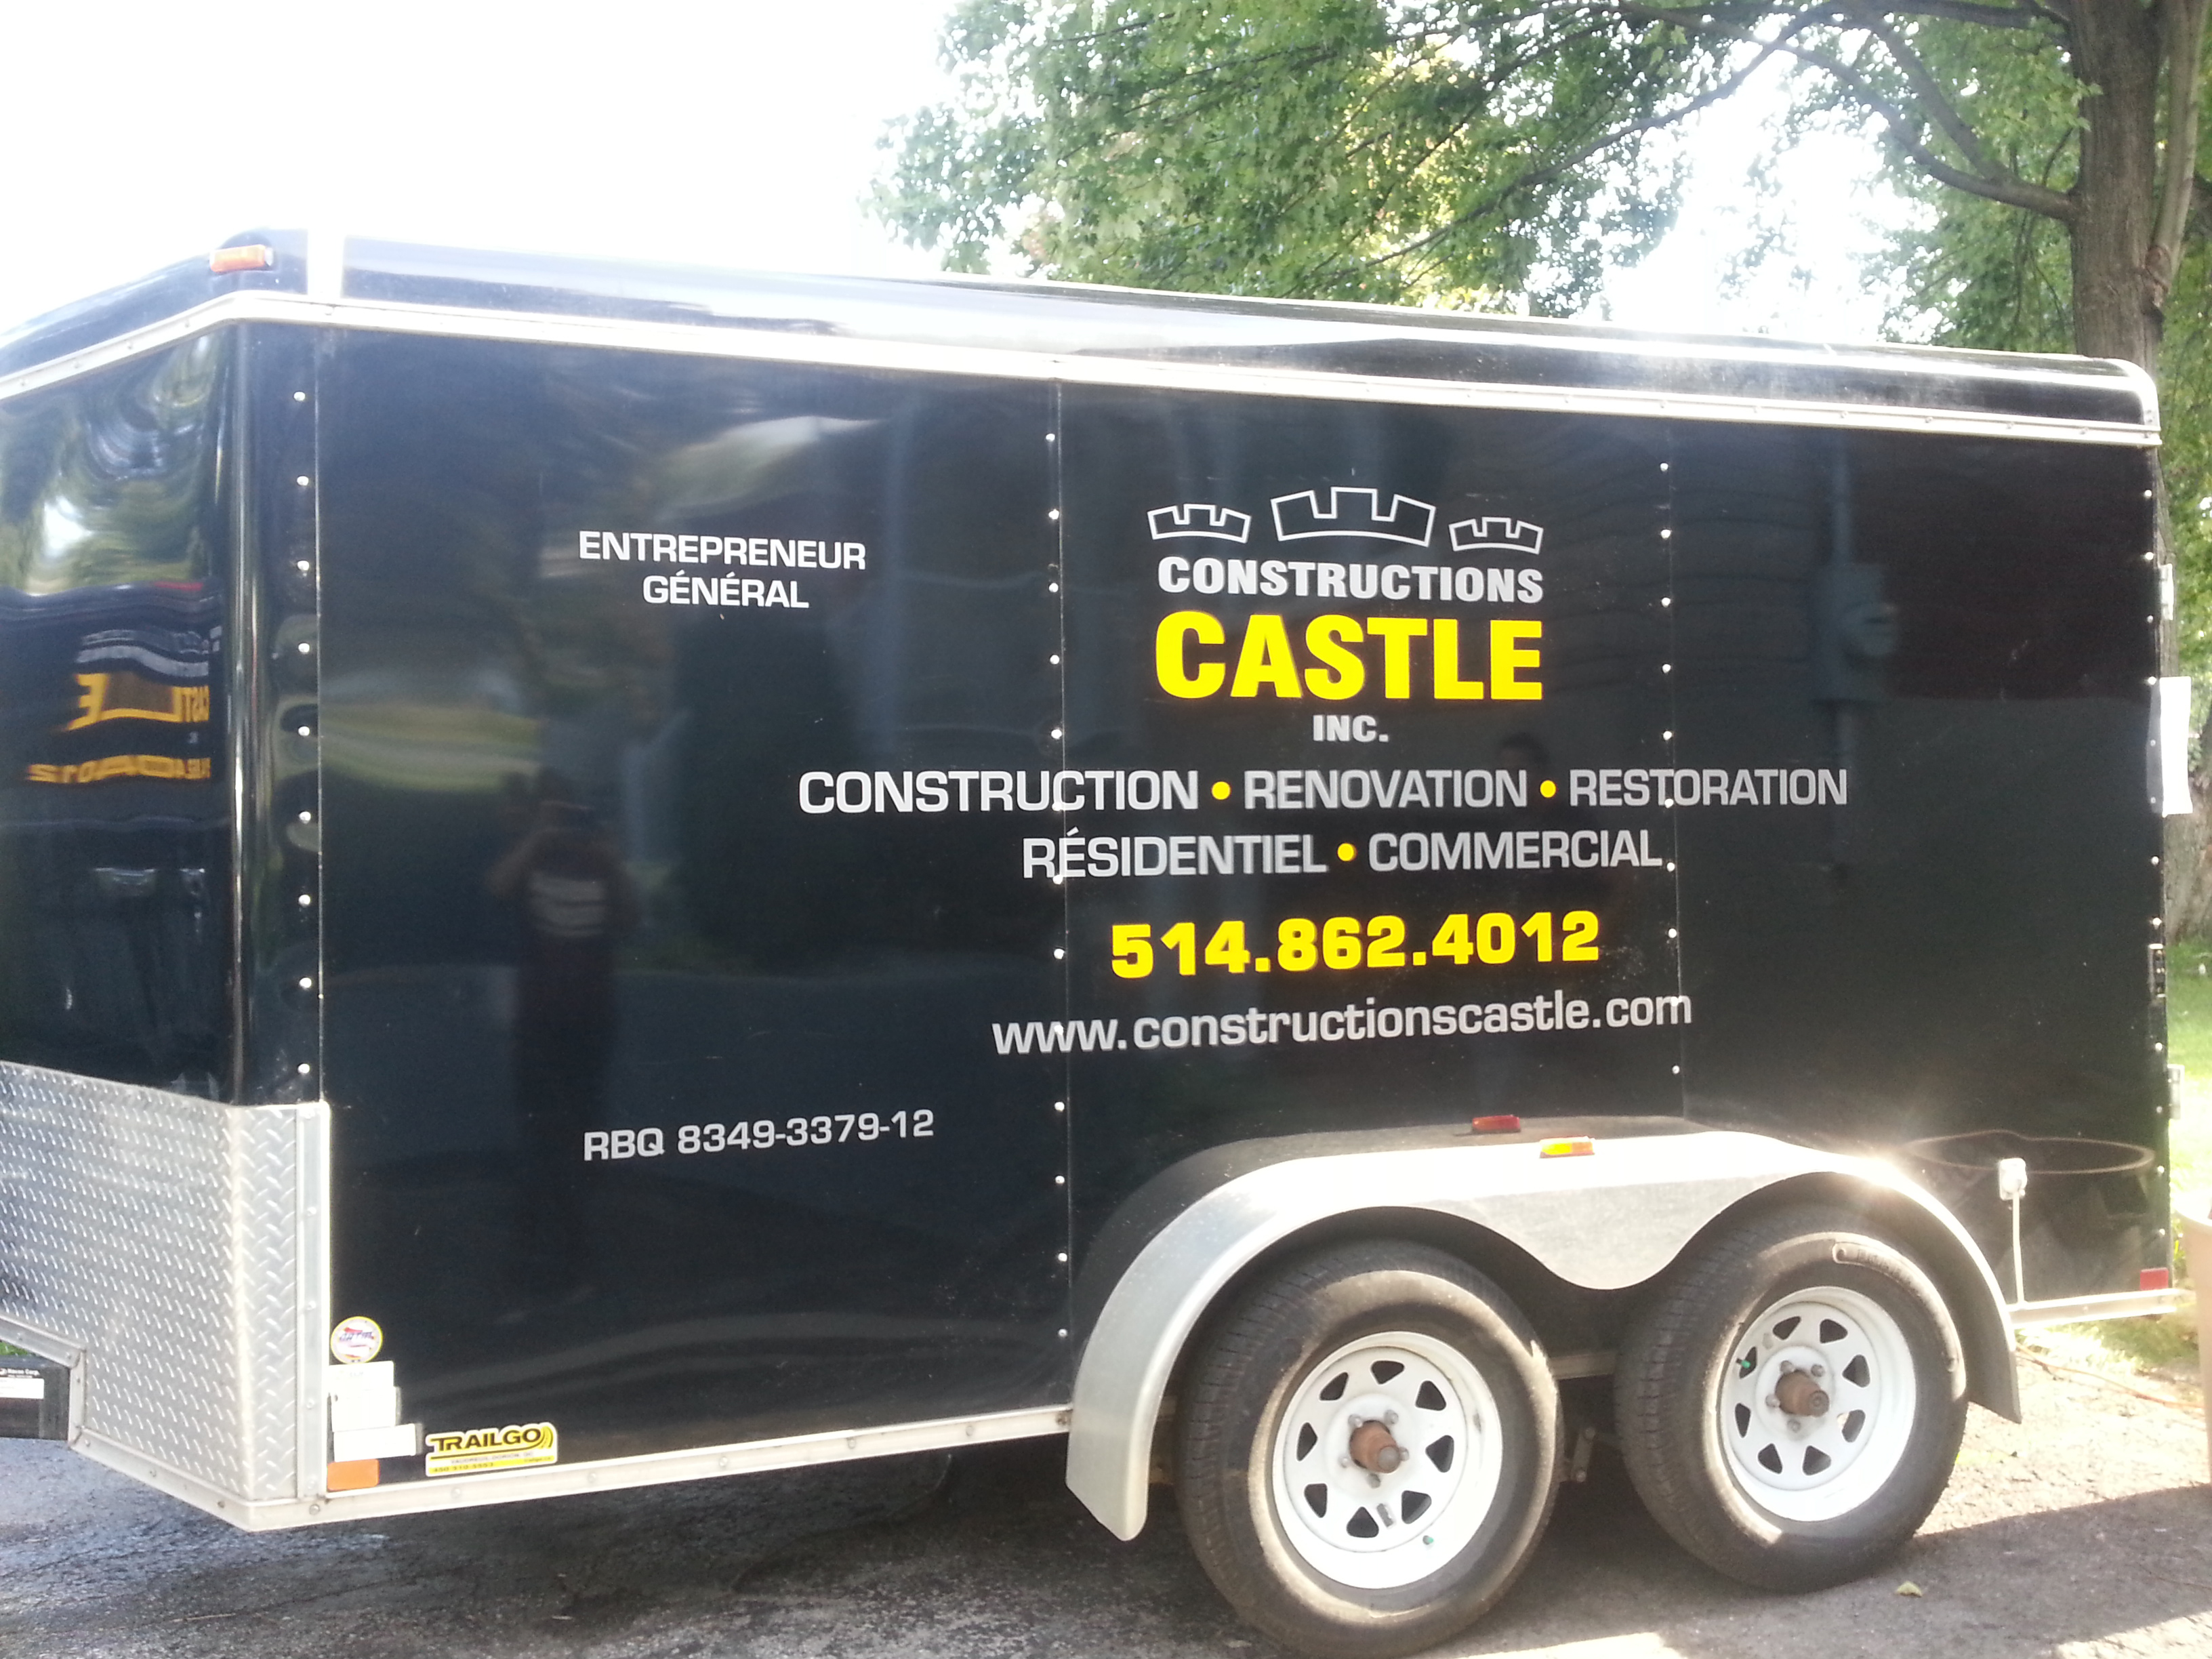 Vehicle Lettering - Castle Construction